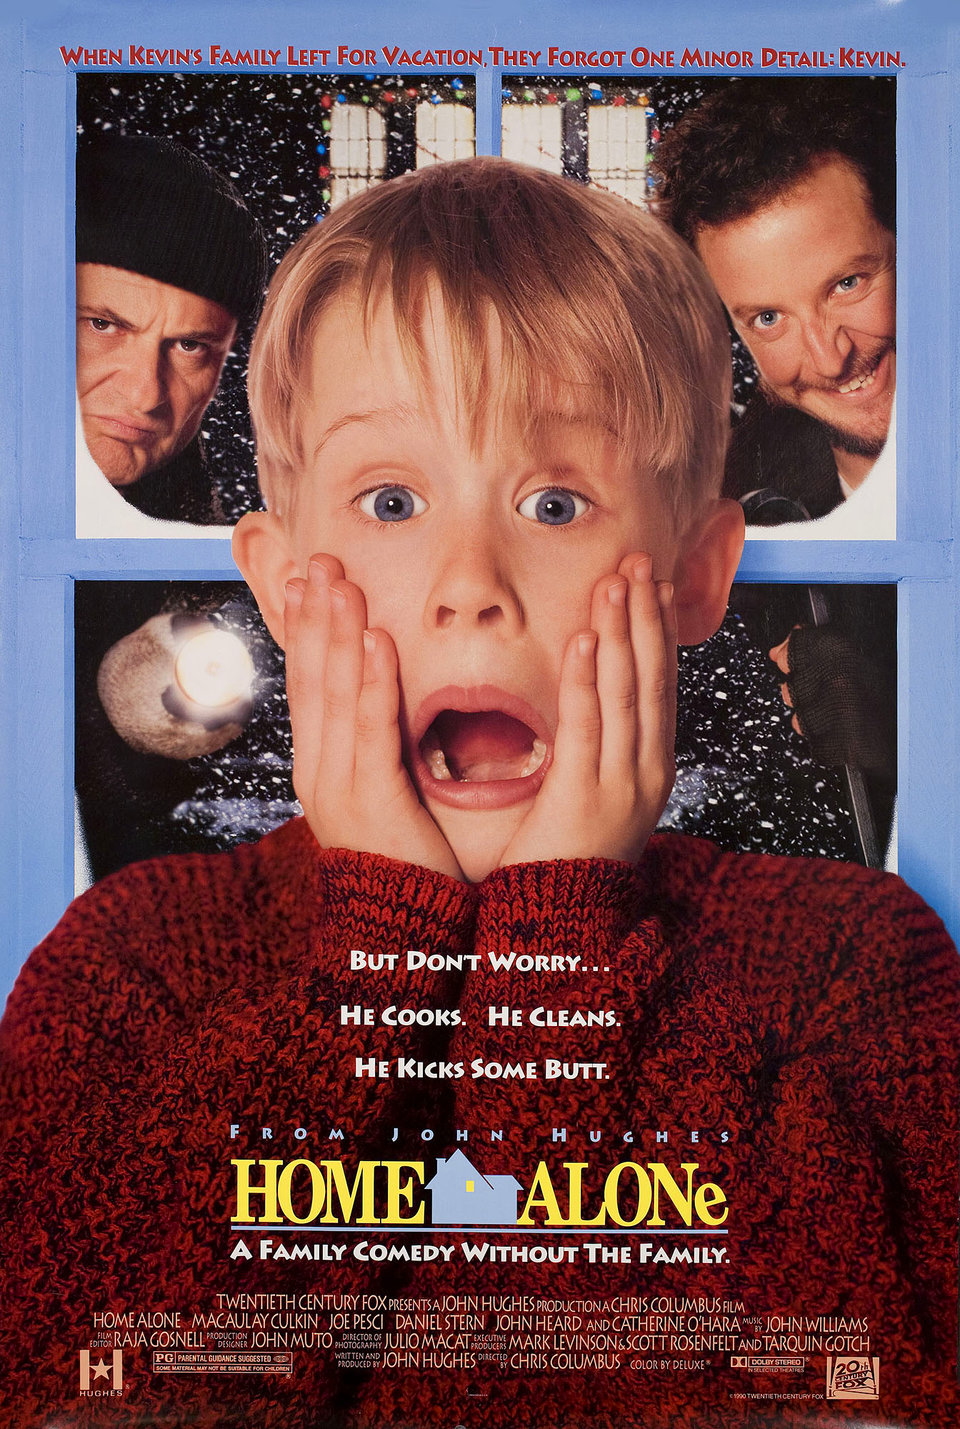 Home Alone 1990 U.S. One Sheet Poster